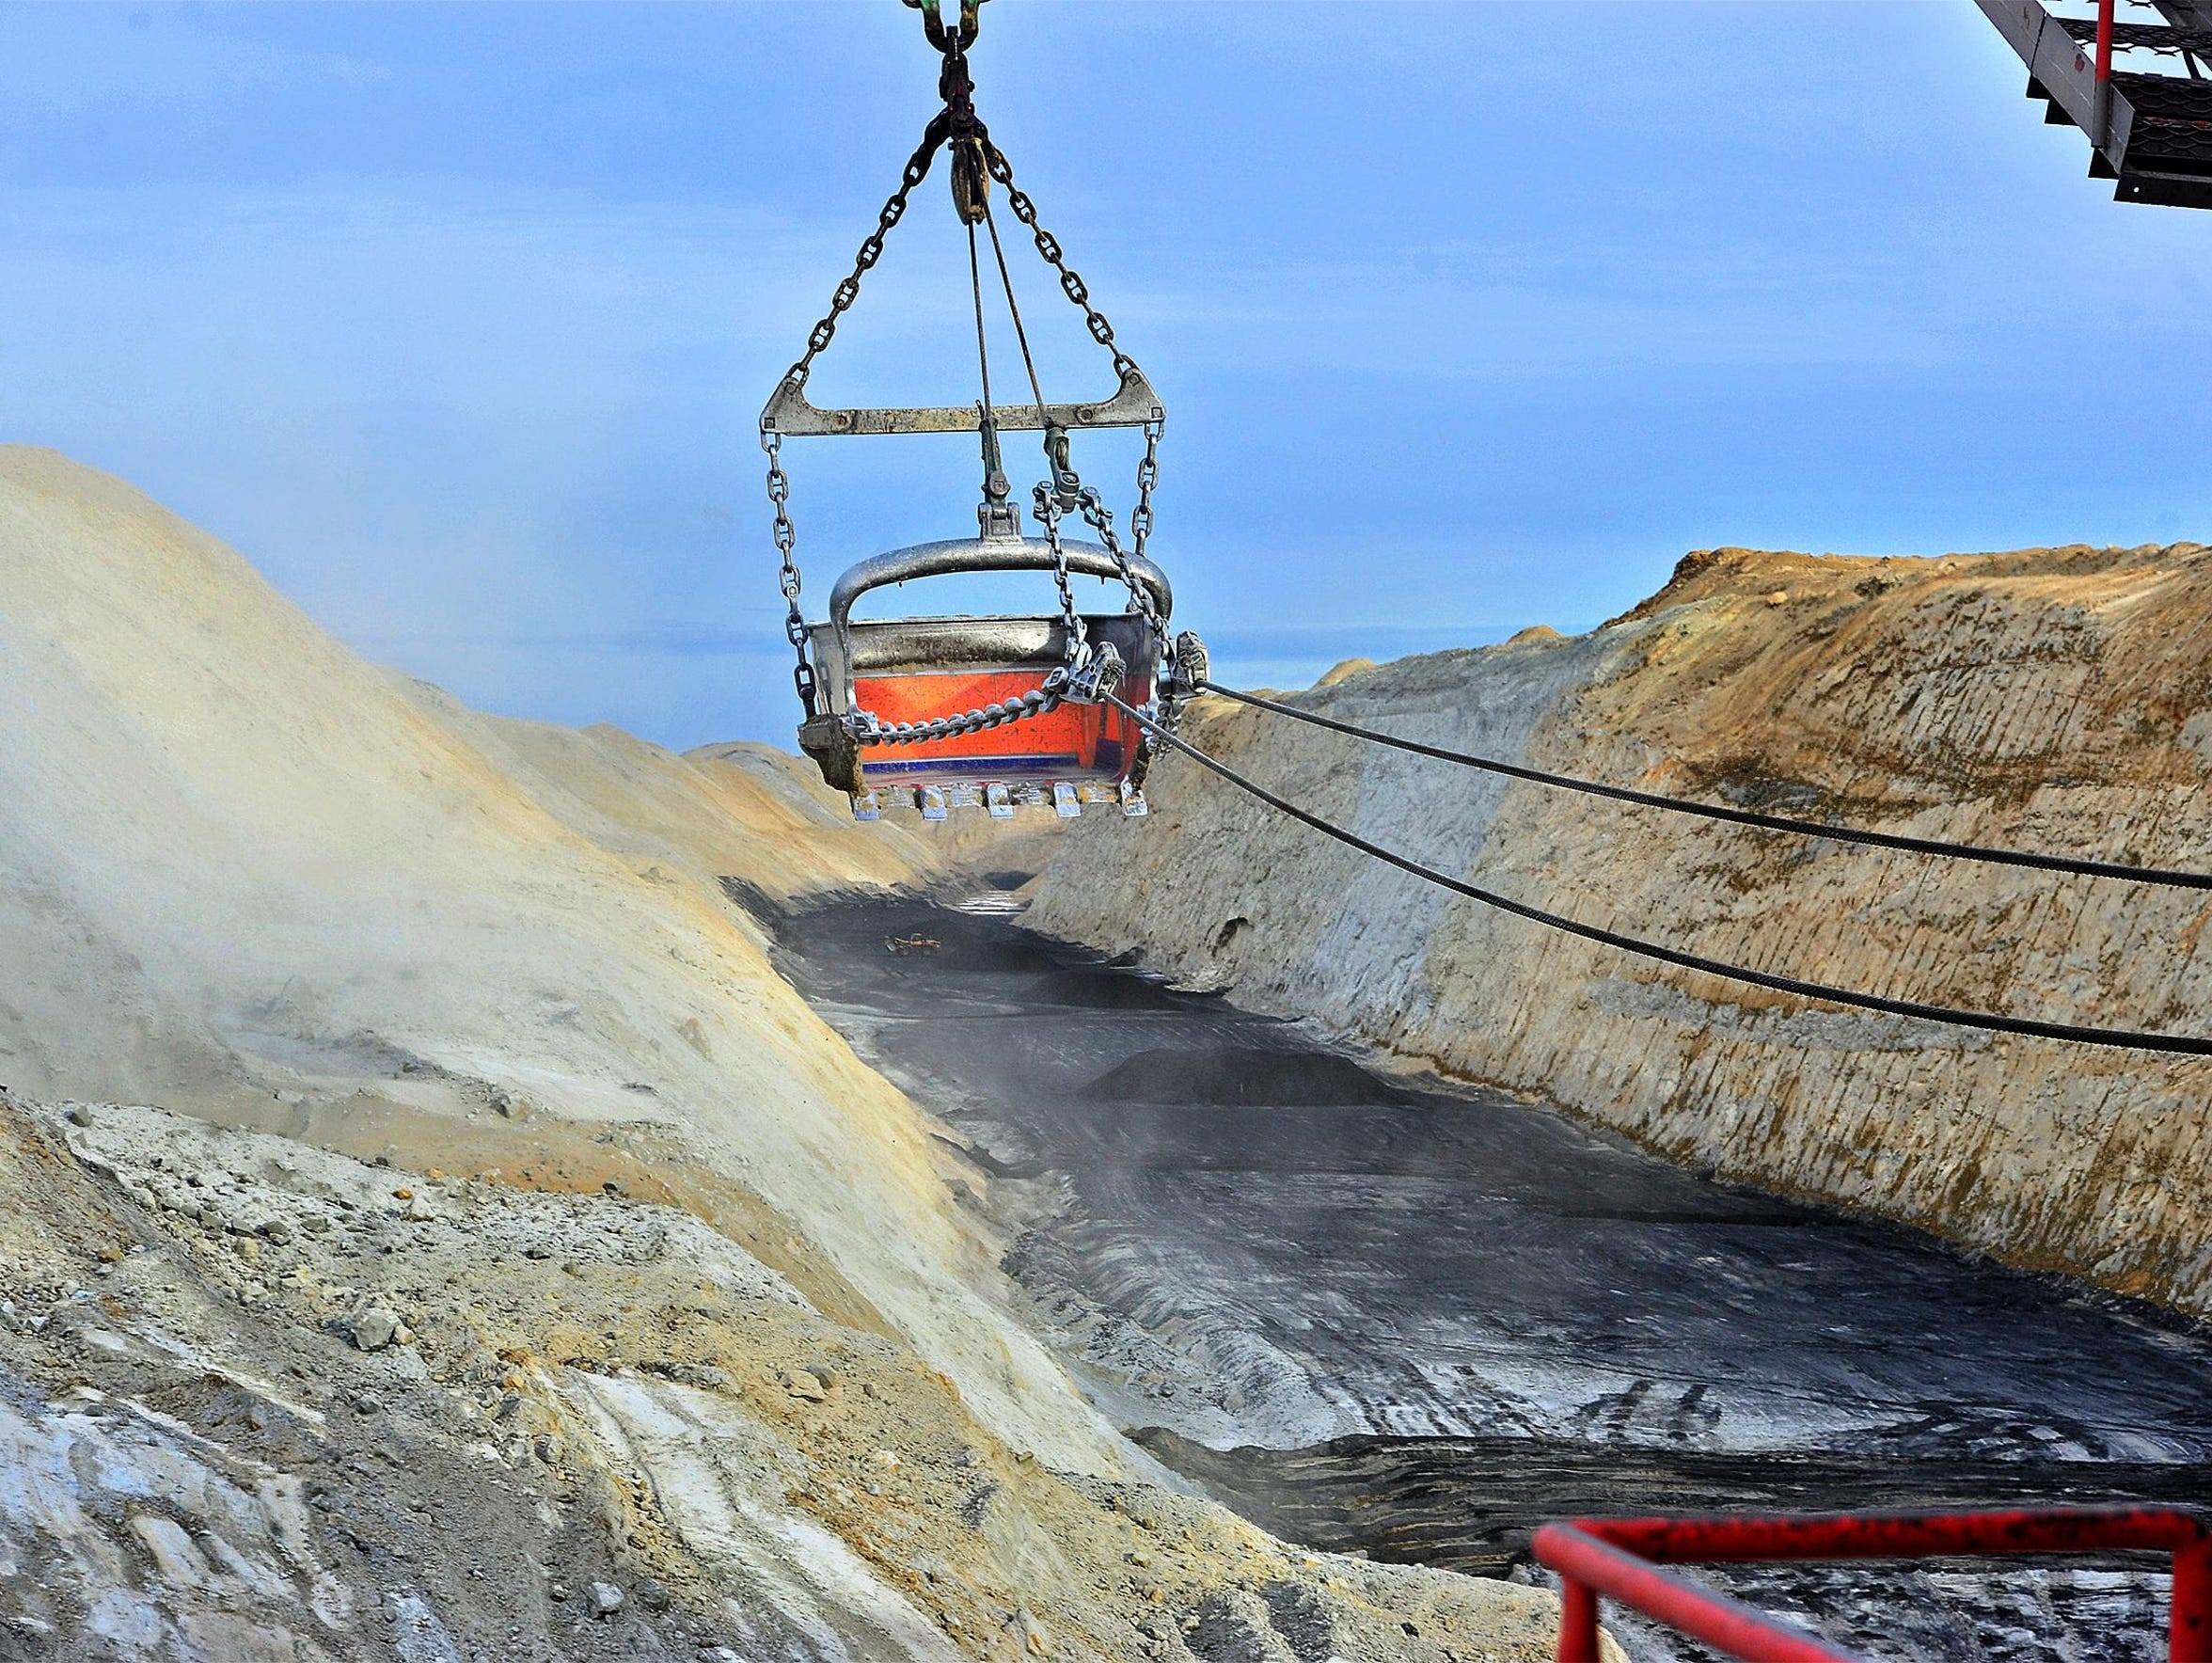 A dragline earth mover does the heavy lifting in uncovering